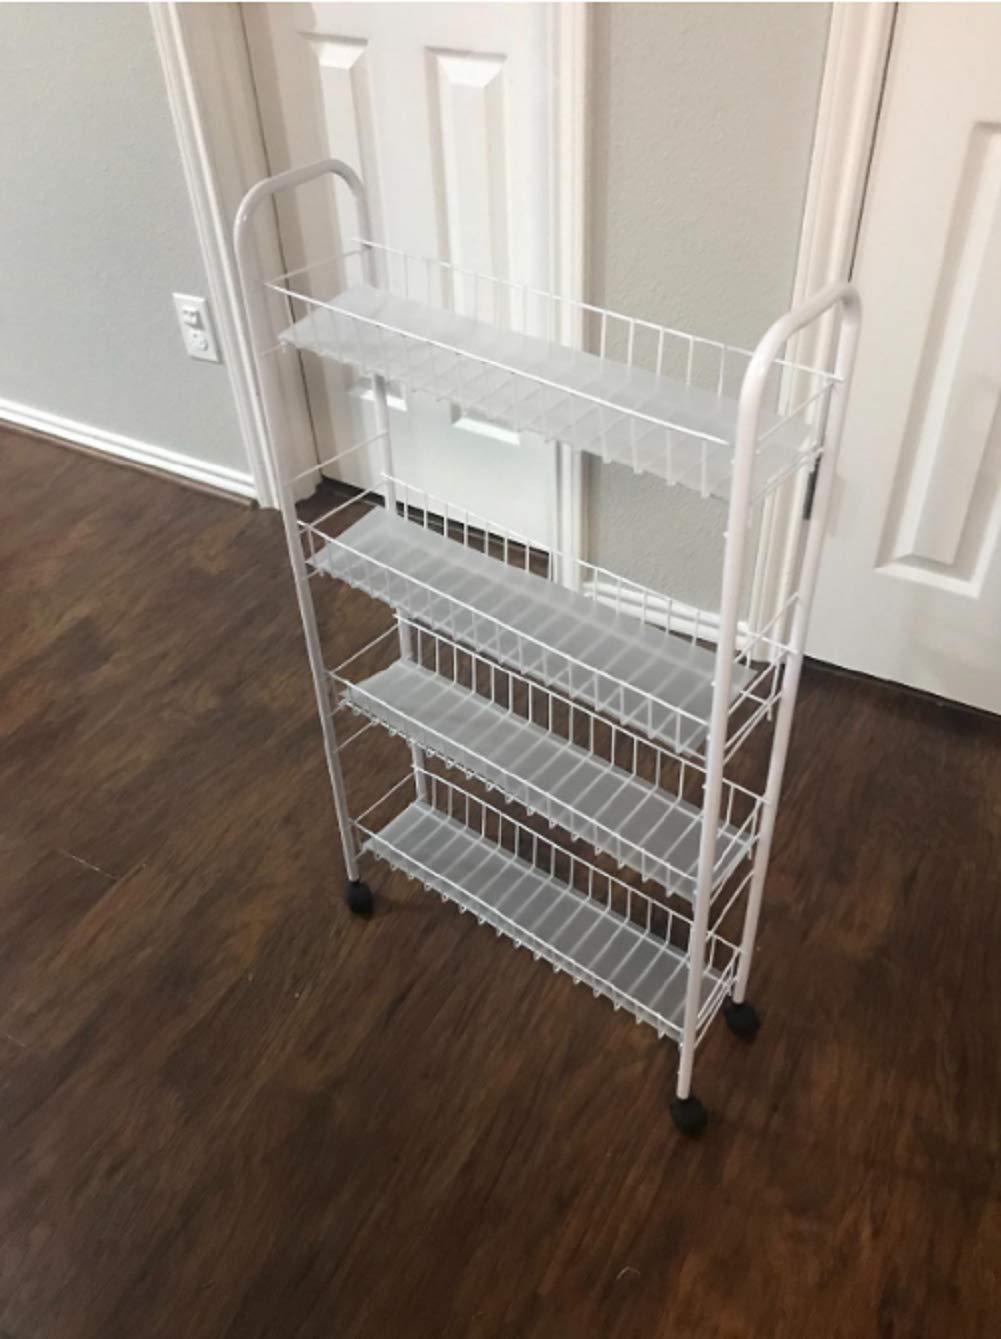 Yontree 3-Tiers Adjustable Gap Storage Rack Bathroom Organizer Shelf Kitchen Multifunction Utility Cart Slim Slide Out Storage Tower Rack with 4 wheels